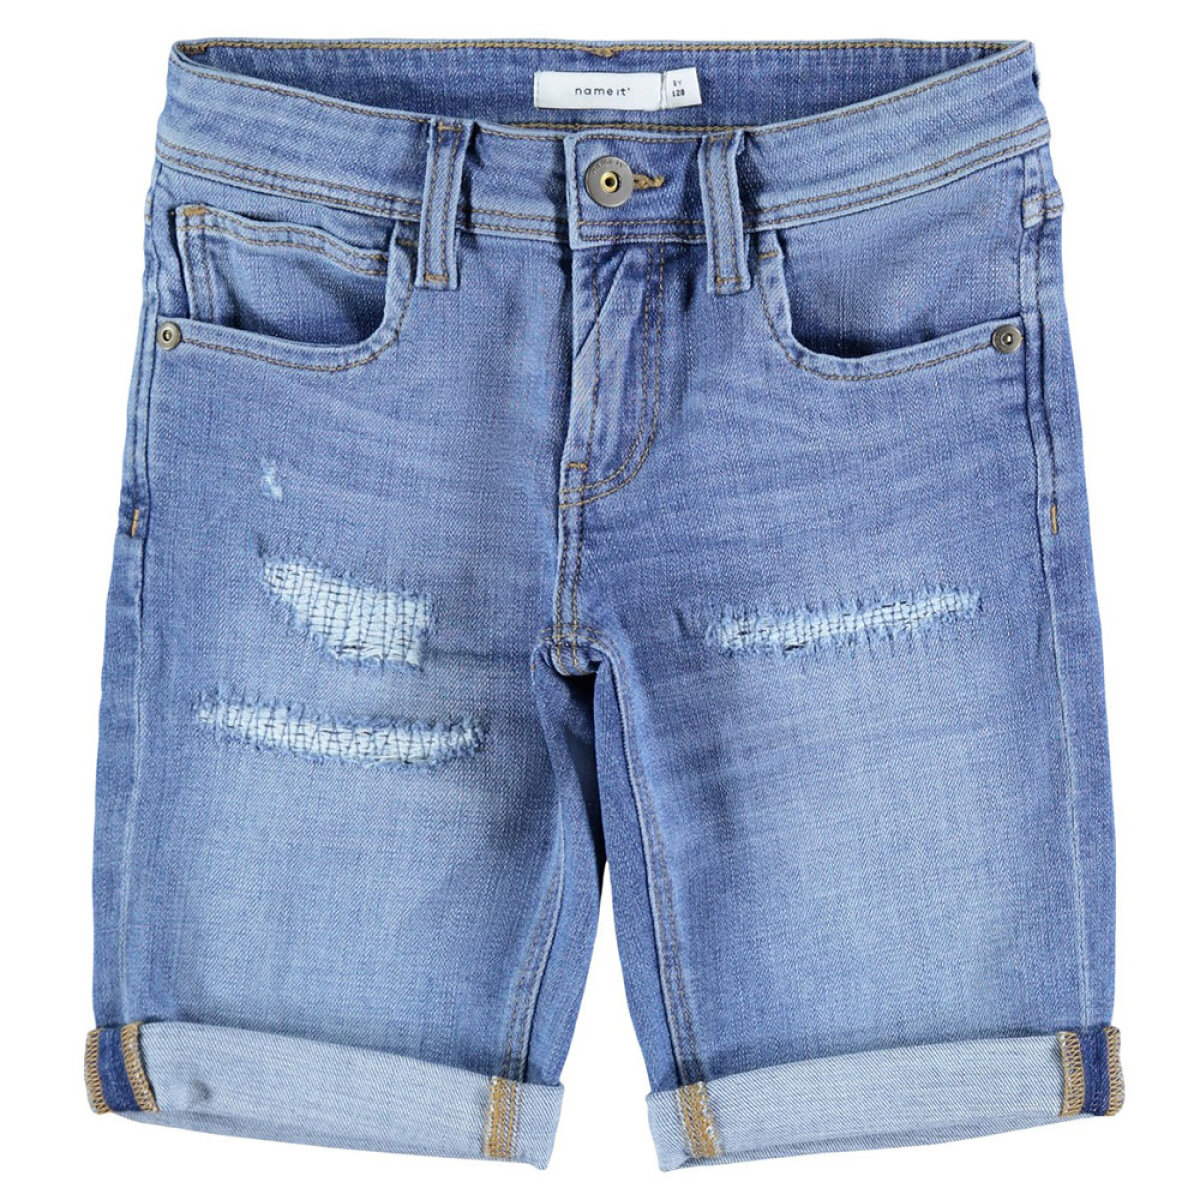 Name It jongens jeans short 13190026 blauw